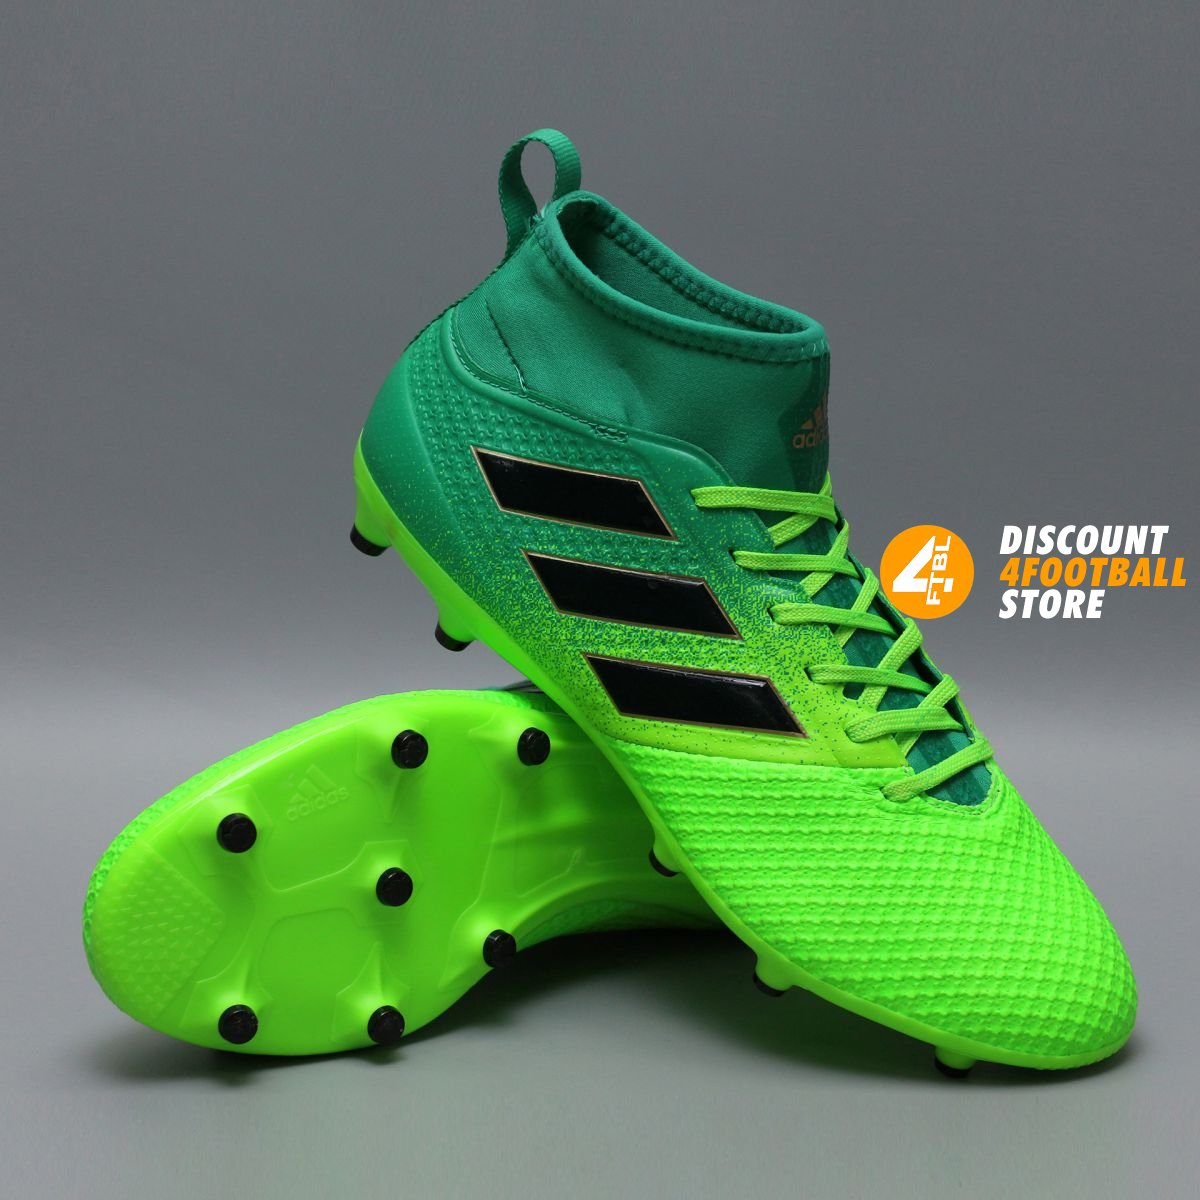 Бутсы ADIDAS ACE 17.3 PRIMEMESH FG BB1016 ultra green — купить в ... 0b02c74fcd0